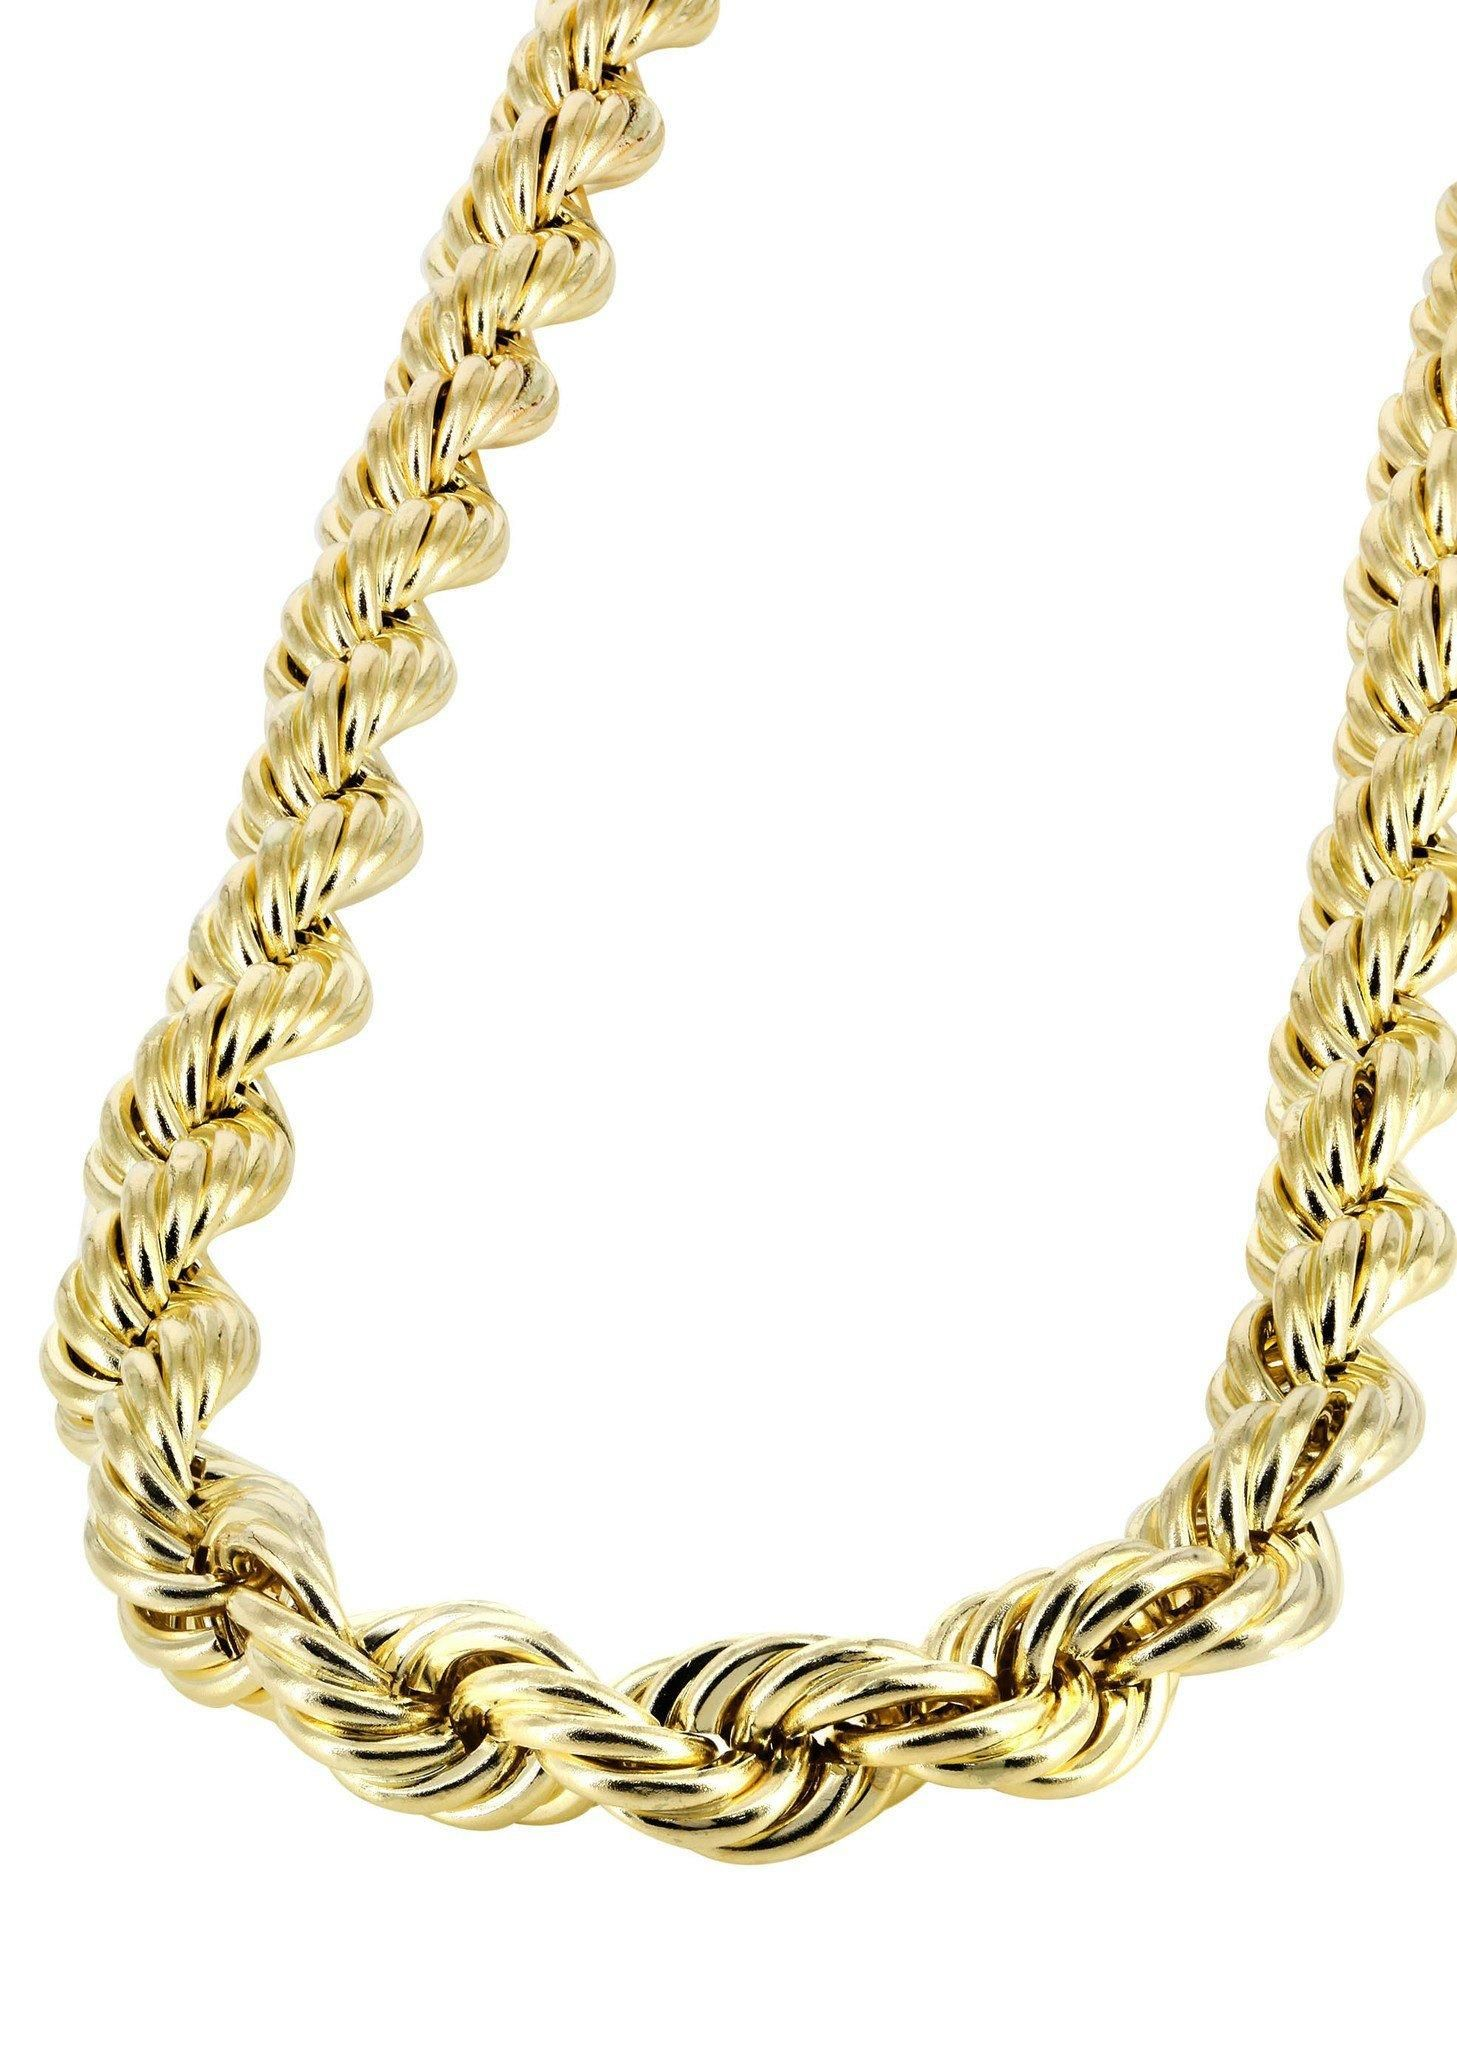 Frostnyc frost nyc hollow mens rope chain k yellow gold